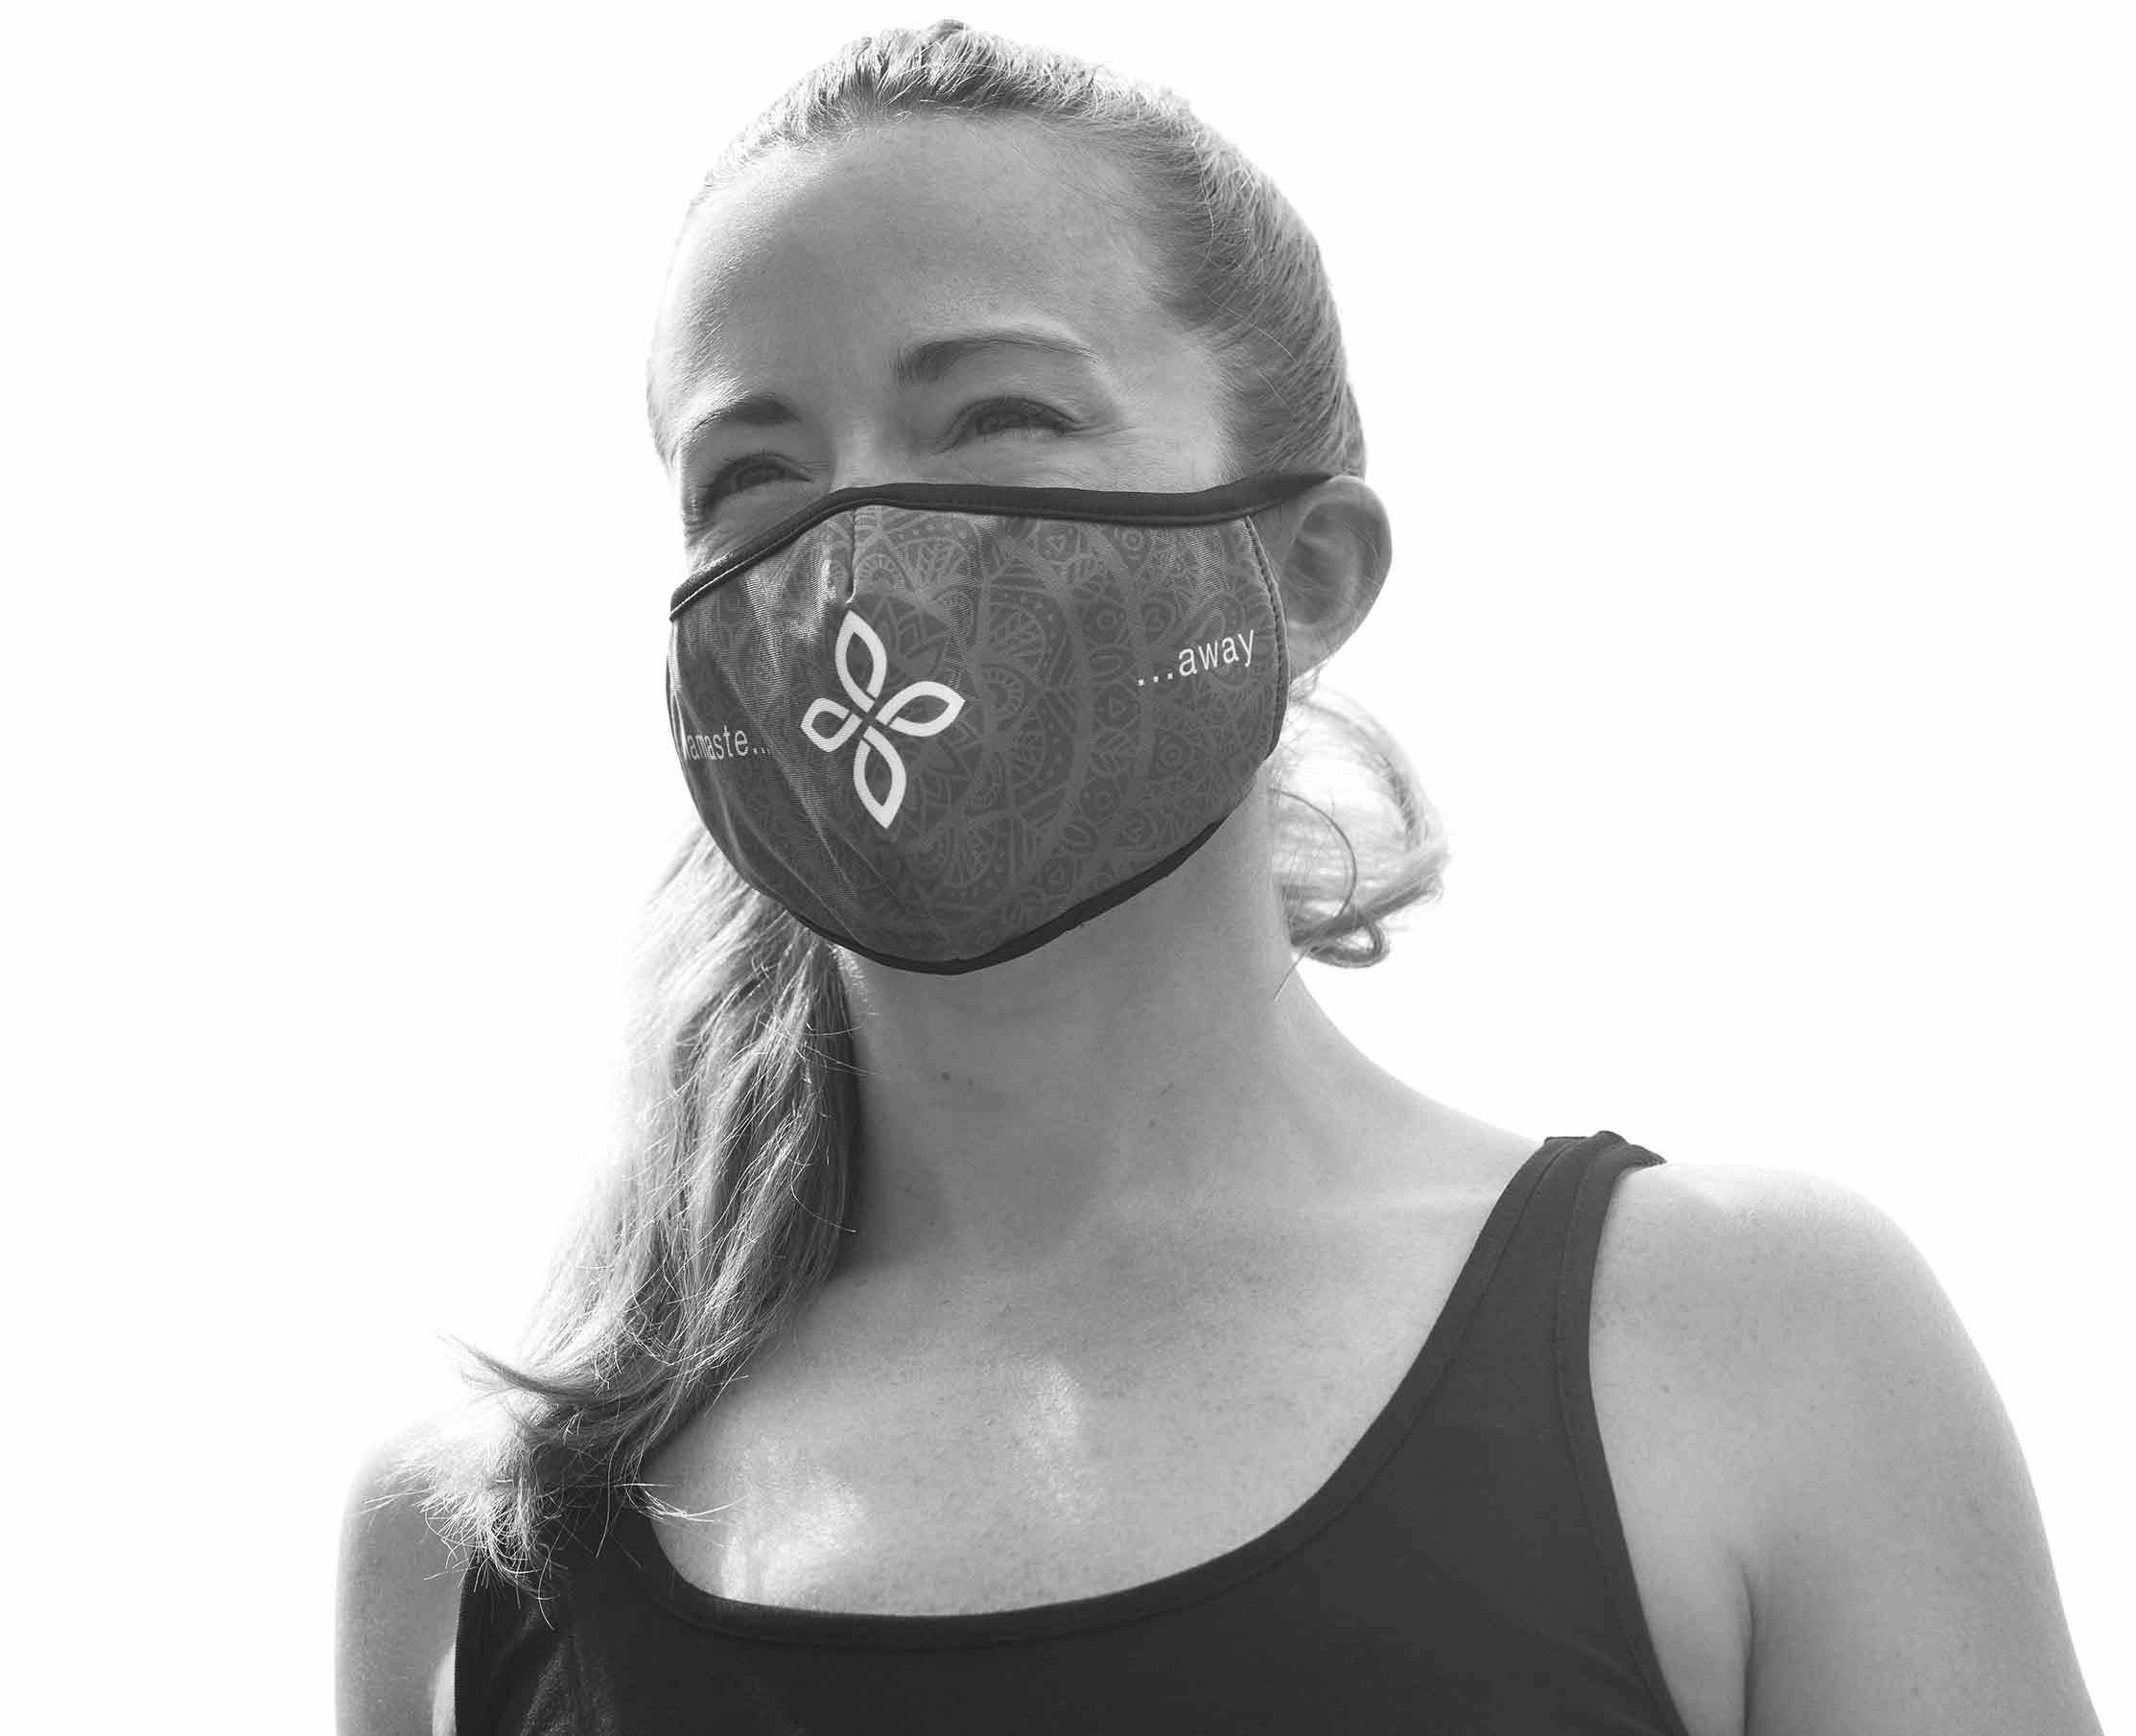 Sida-Yoga-Outdoor-Indoor-Yogi-Face-Masks-Protection-Mandala-Covering-Facemasks-Namaste-Away-Safe-Buy-Online-Non-Woven-Fabric-Hygienic-COVID-19-Coronavirus-Soft-Washable